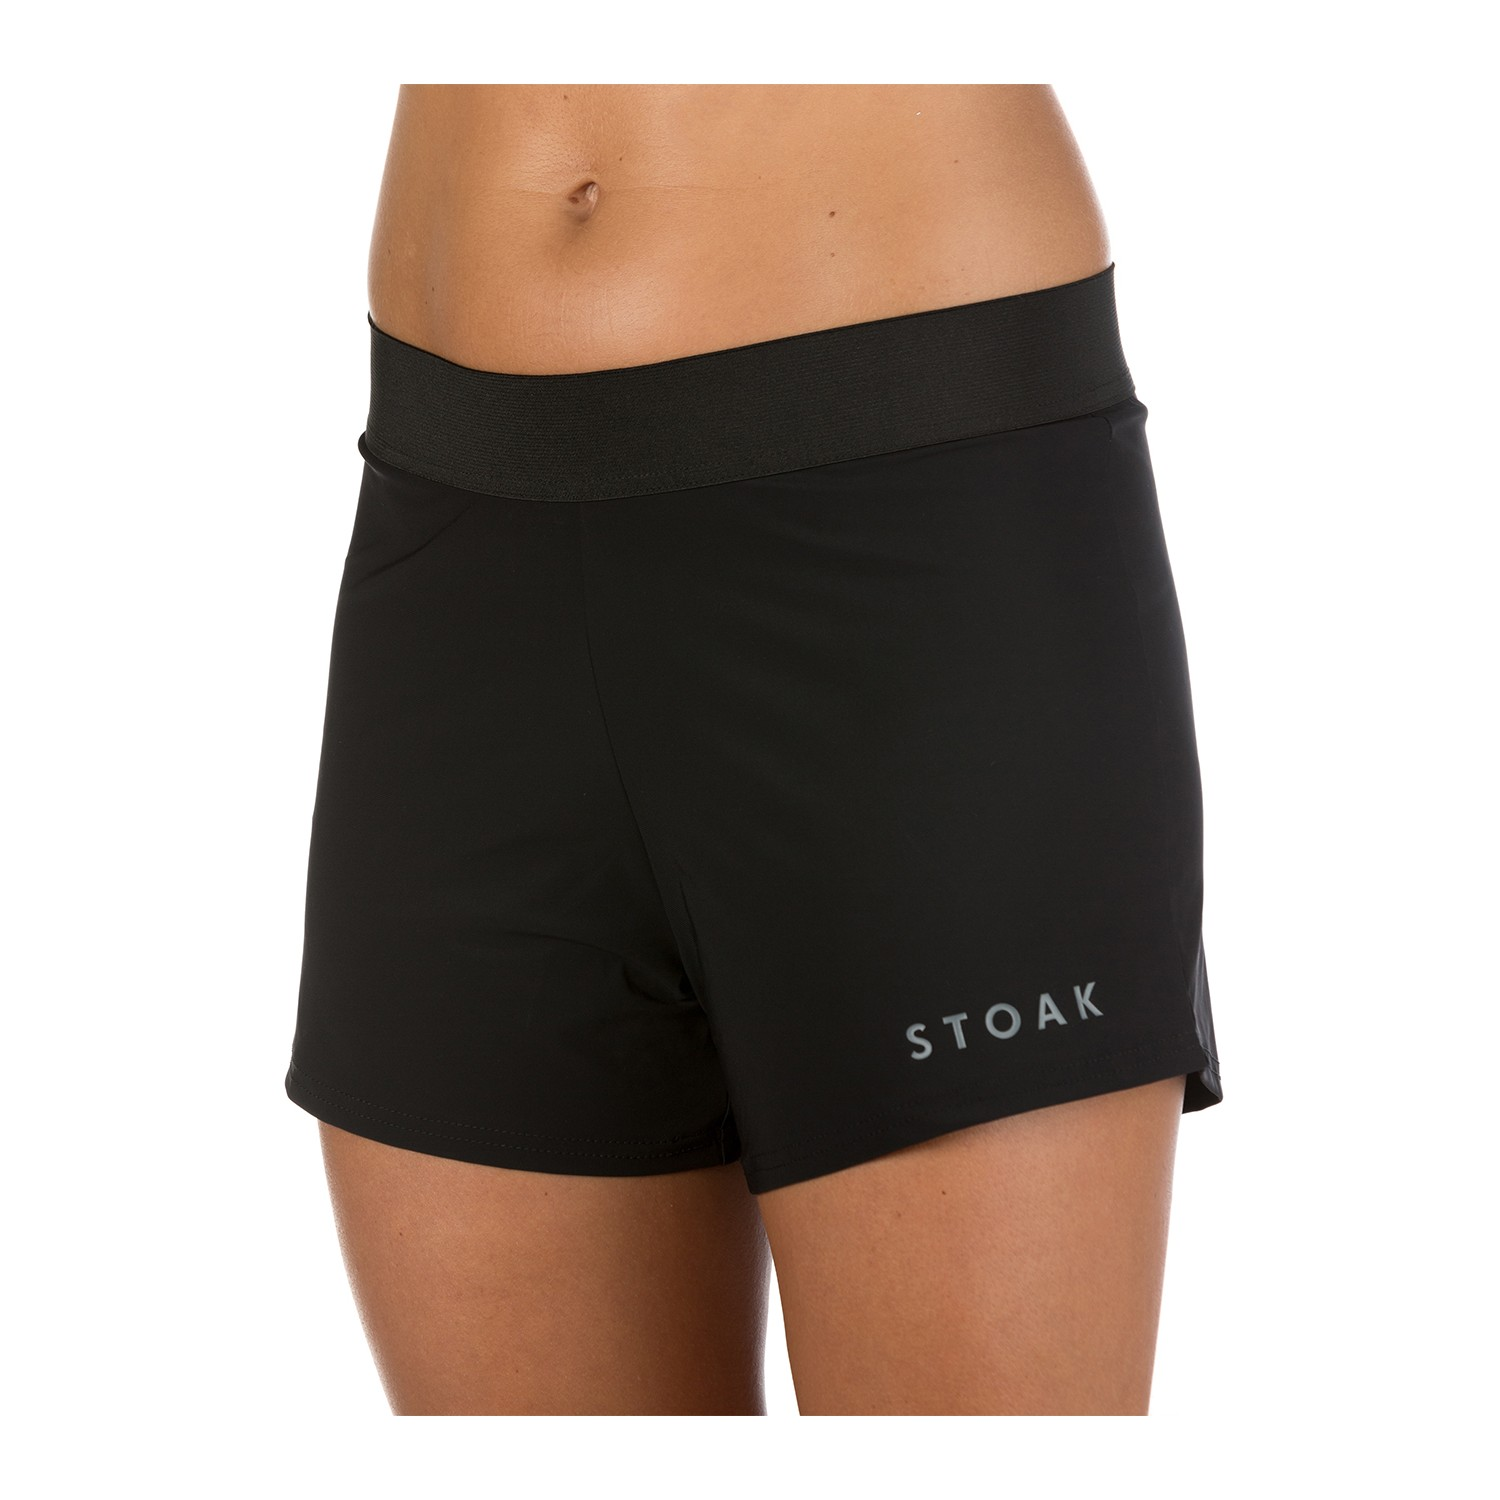 STOAK CARBON Women Athletic Shorts